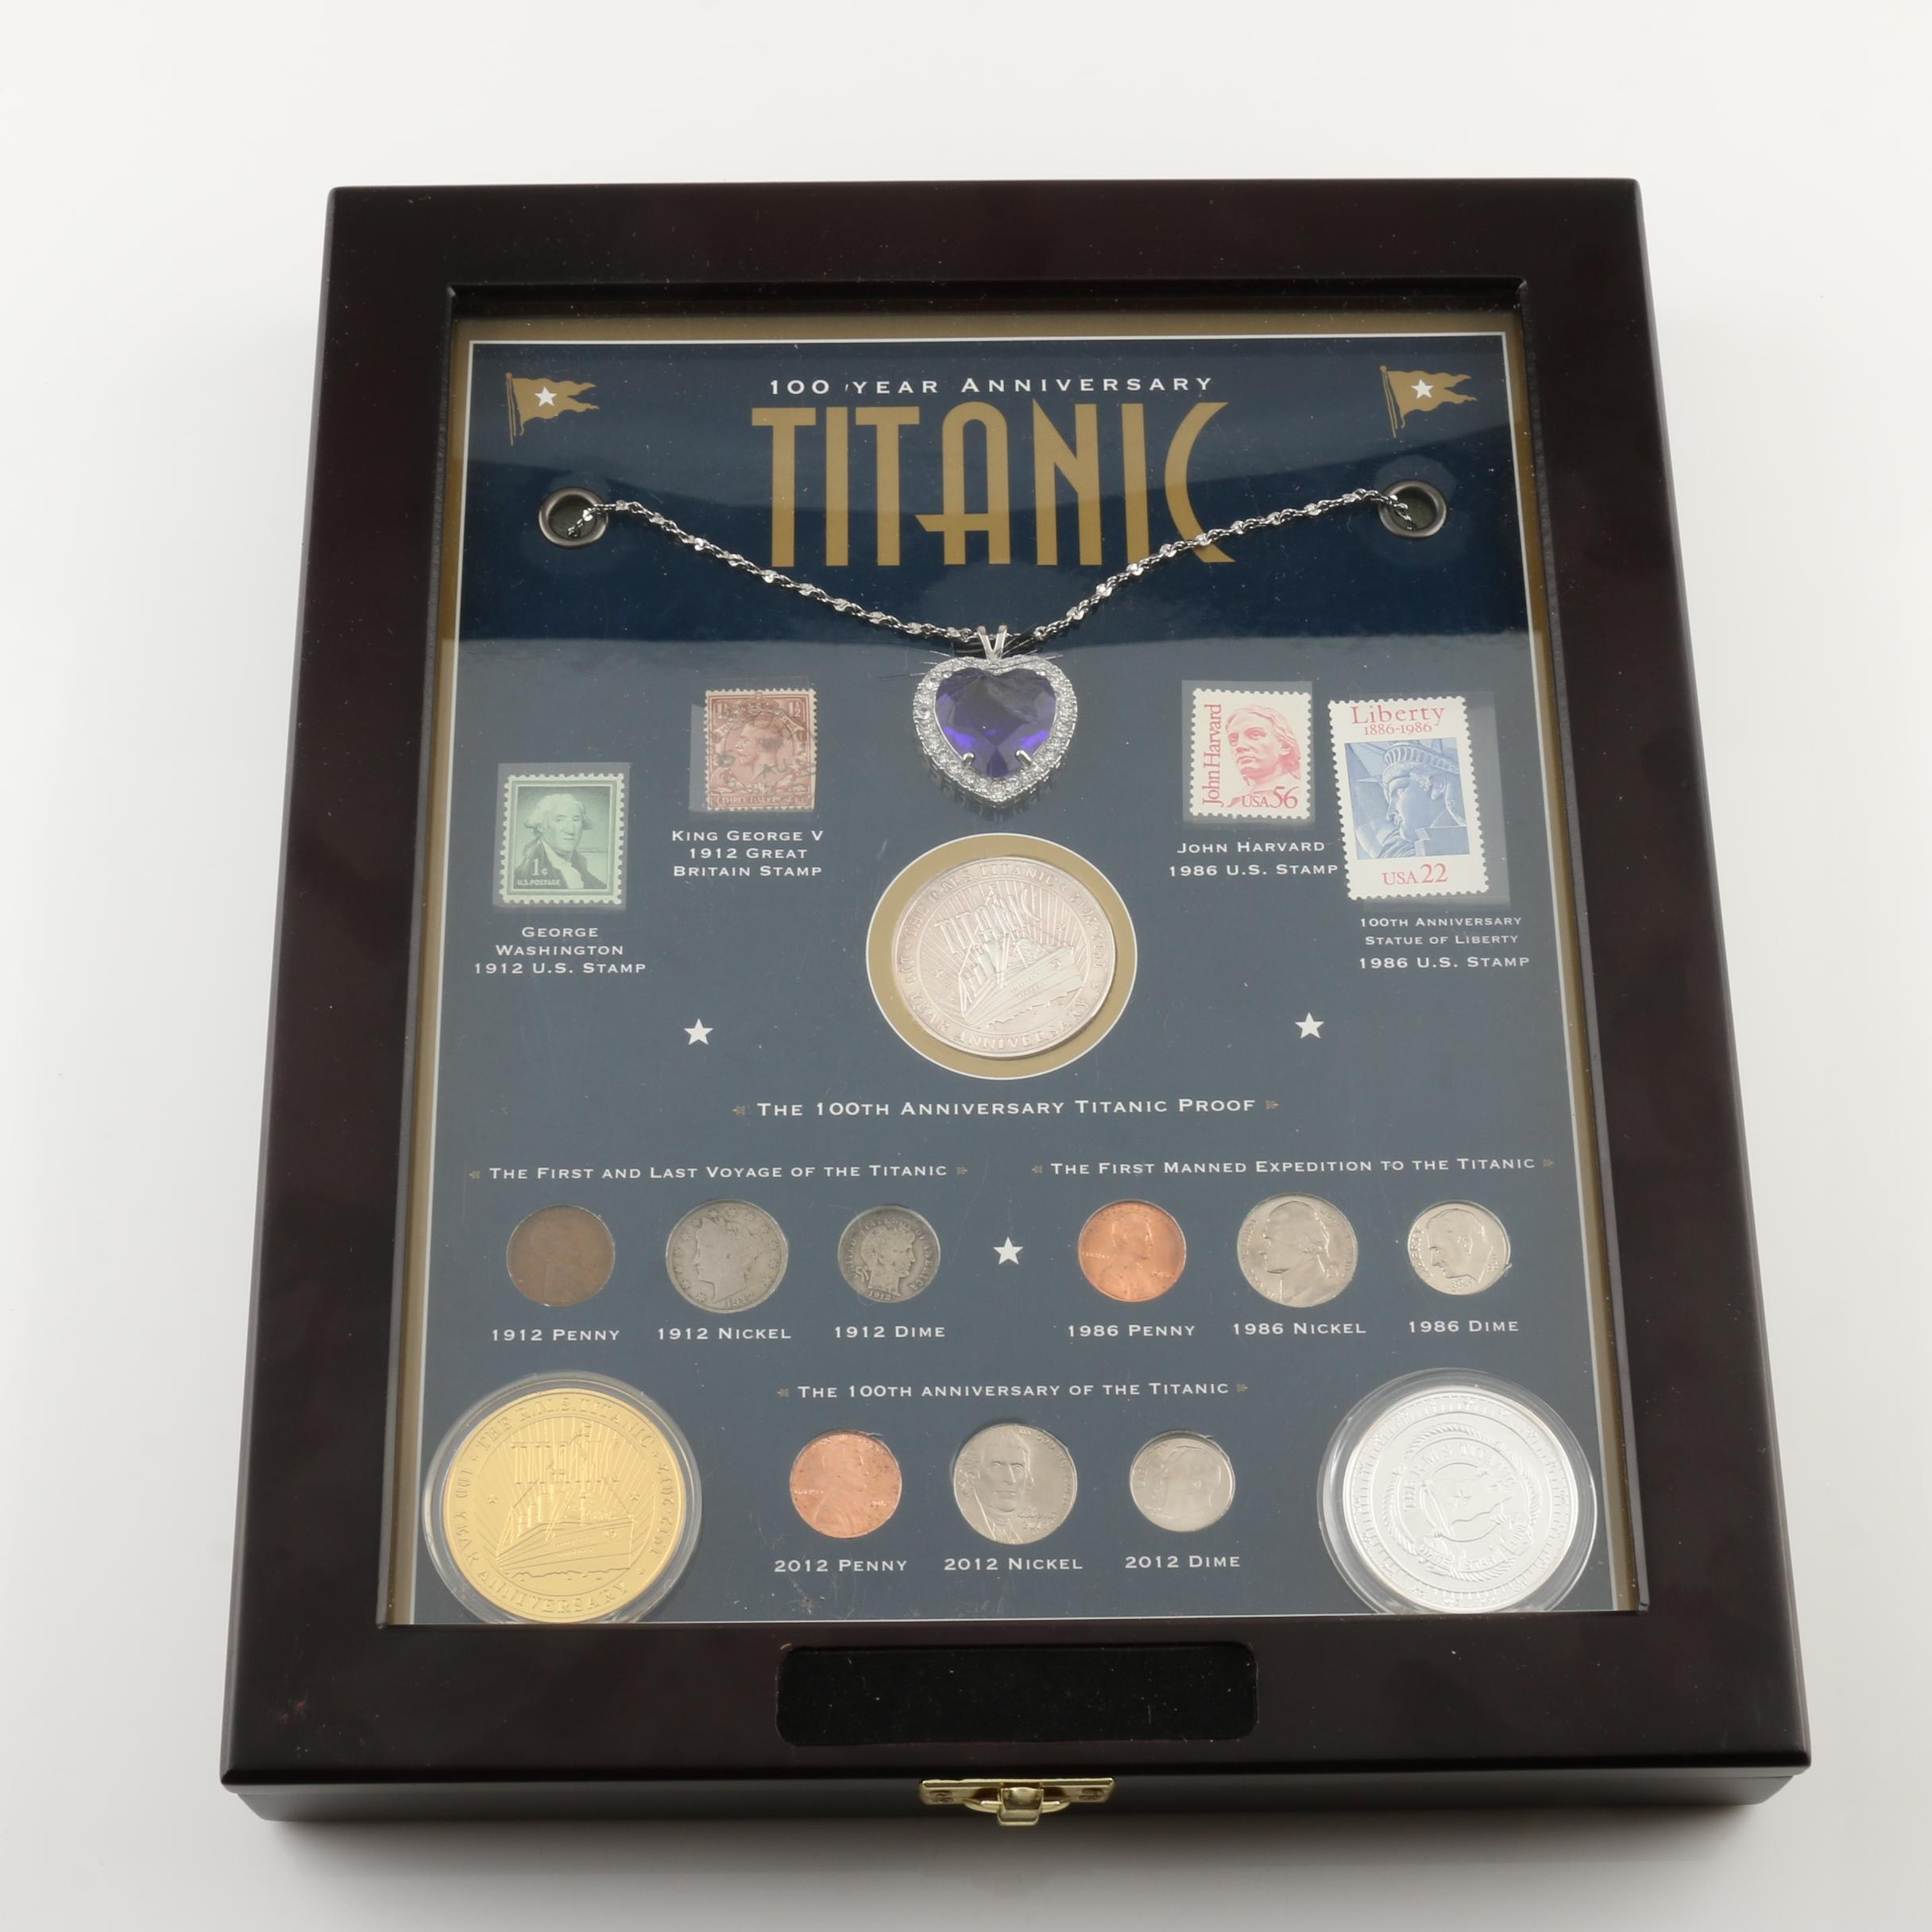 Titanic 100th Anniversary Coin and Stamp Set